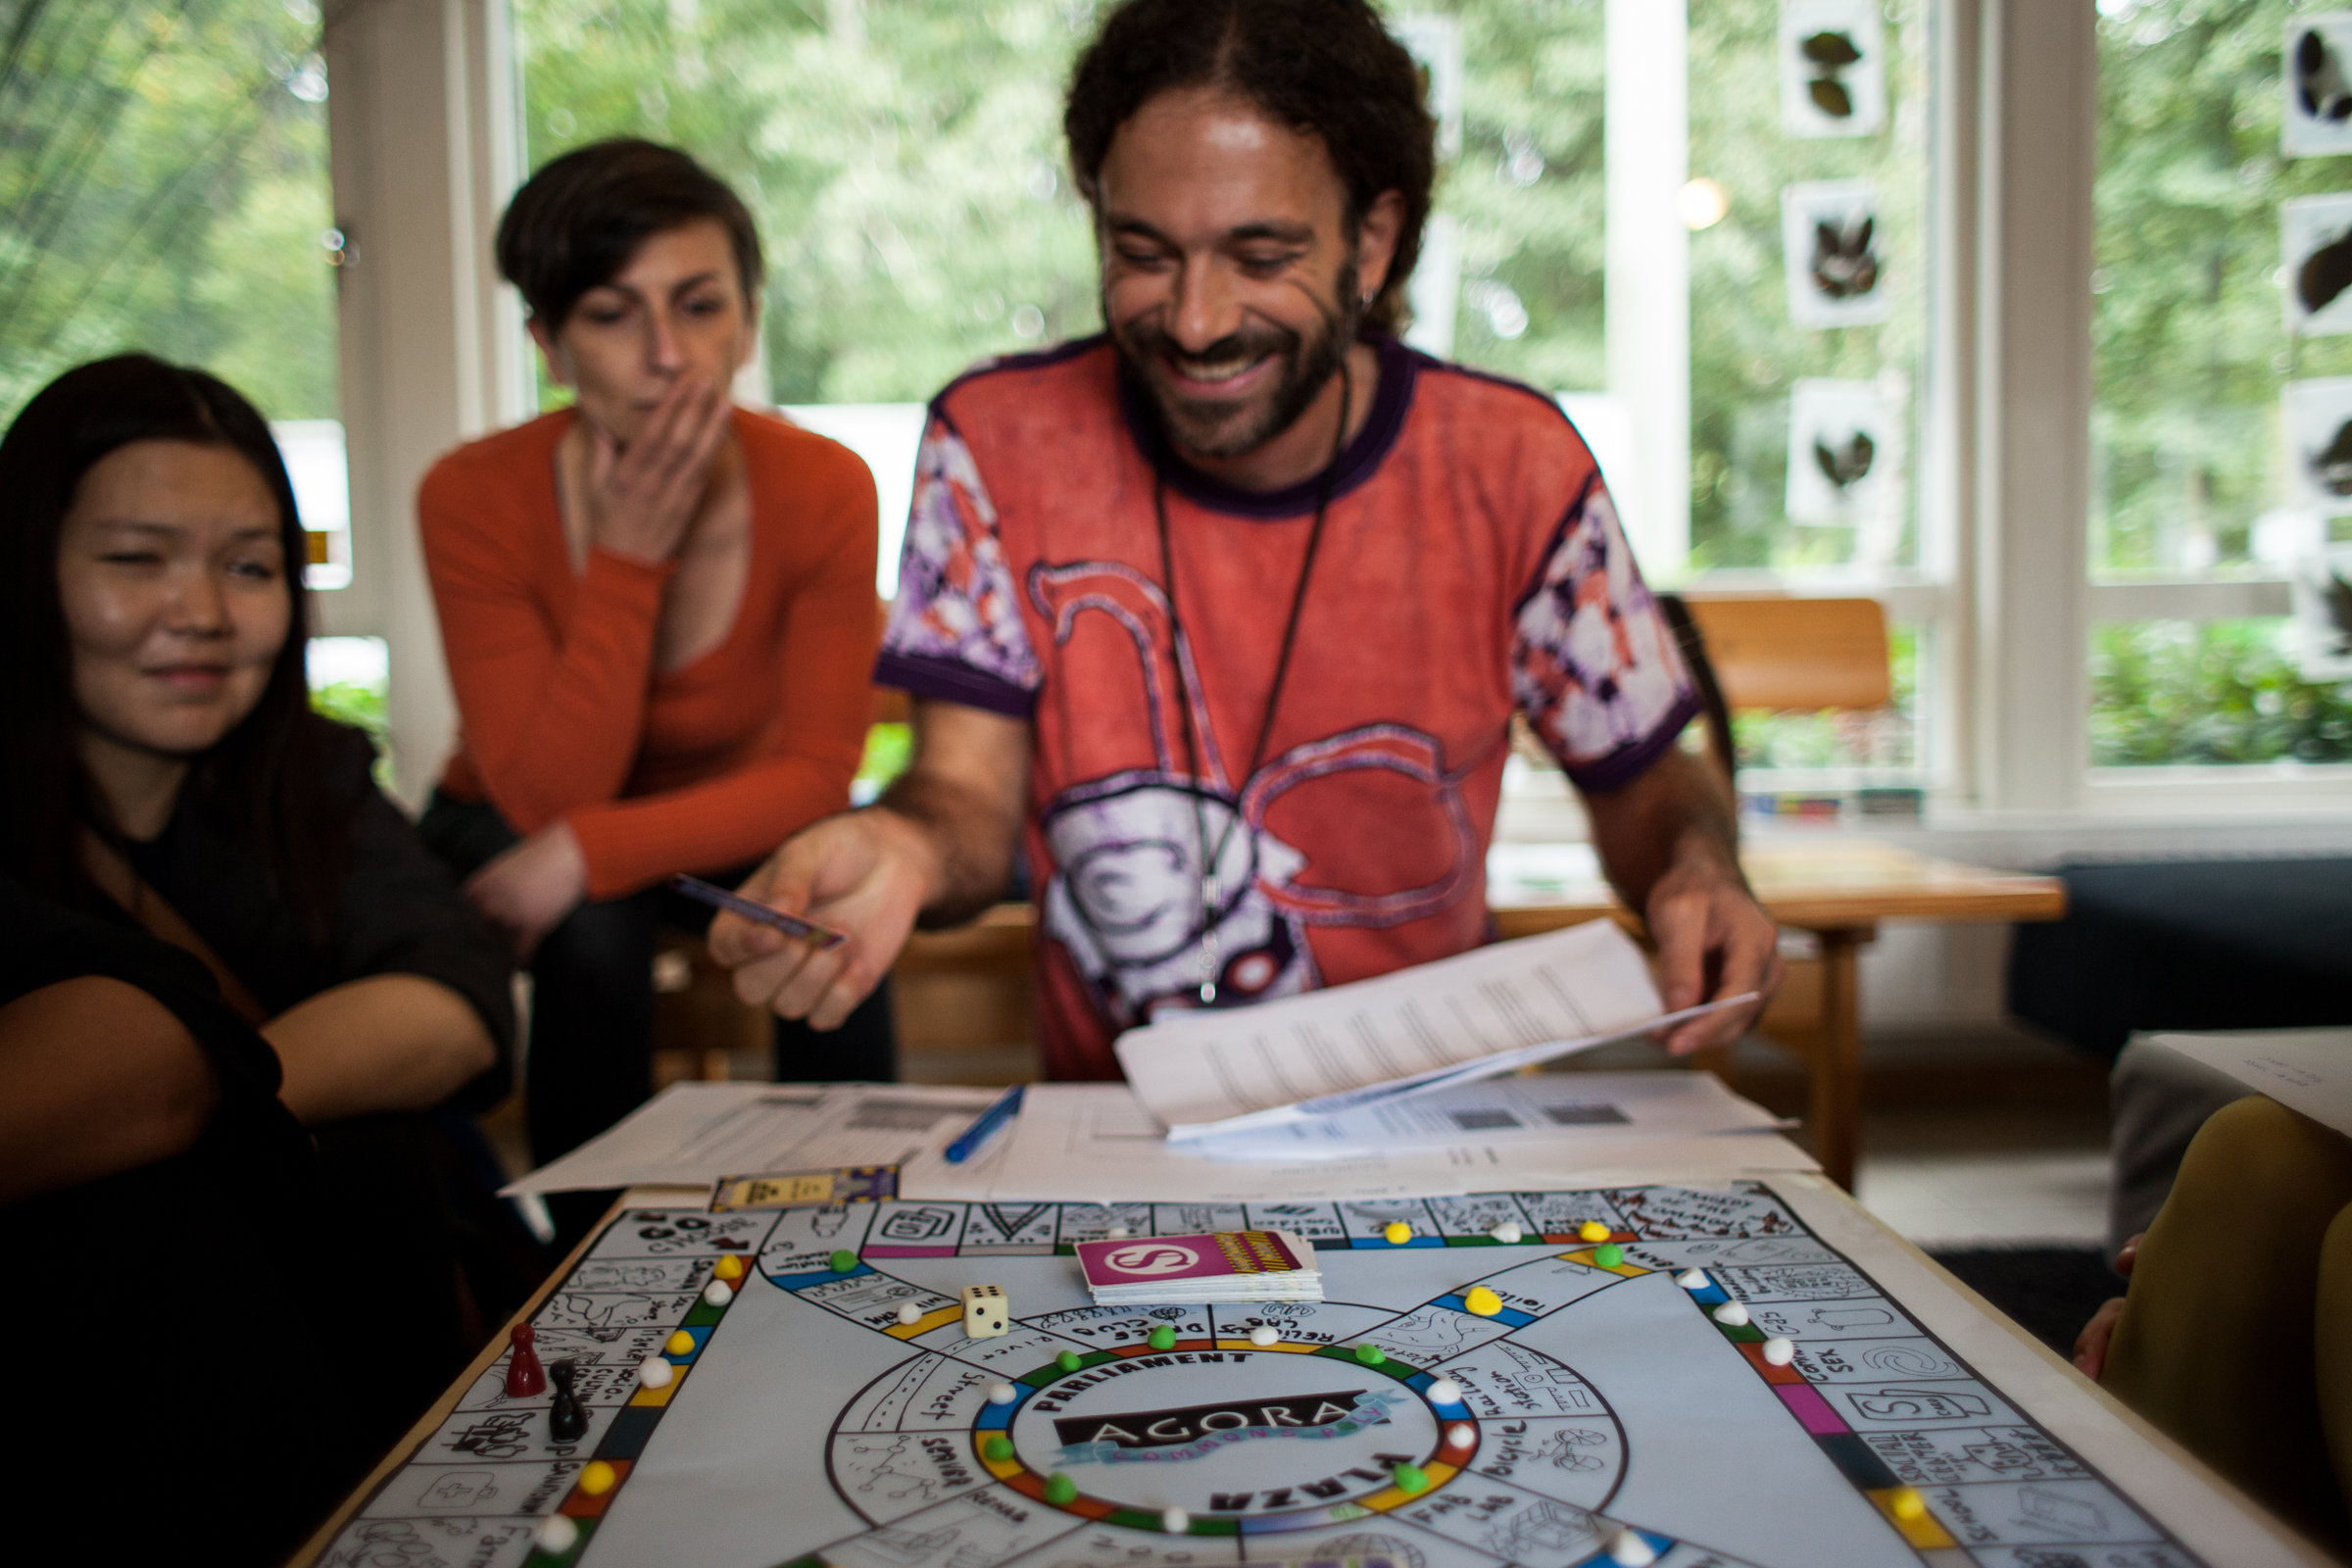 Vassilis Chryssos playing Commonspoly during the Idea Camp 2015.